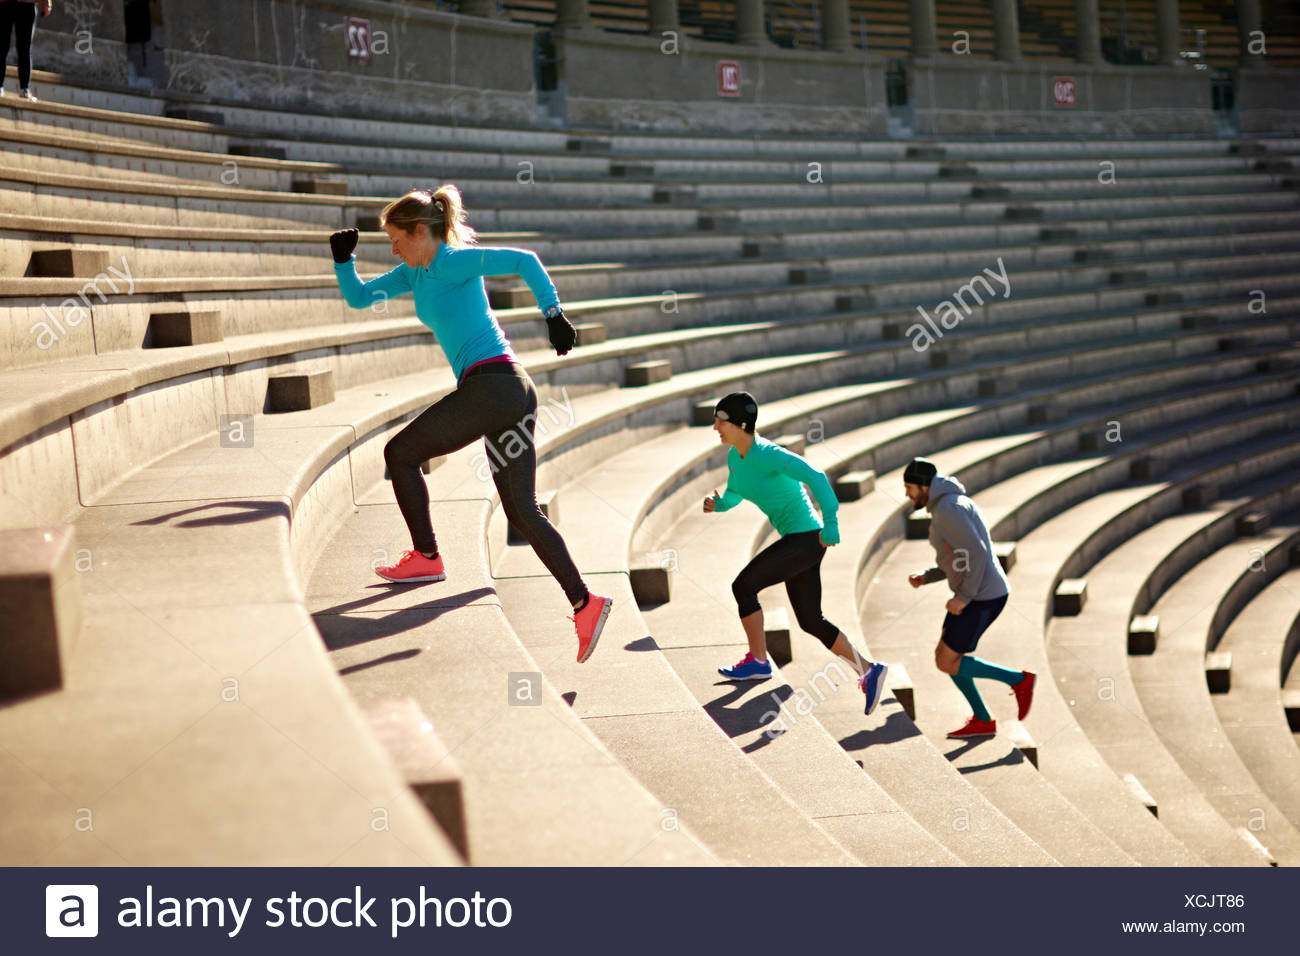 Working out on the stairs of the Harvard University Stadium - Stock Image